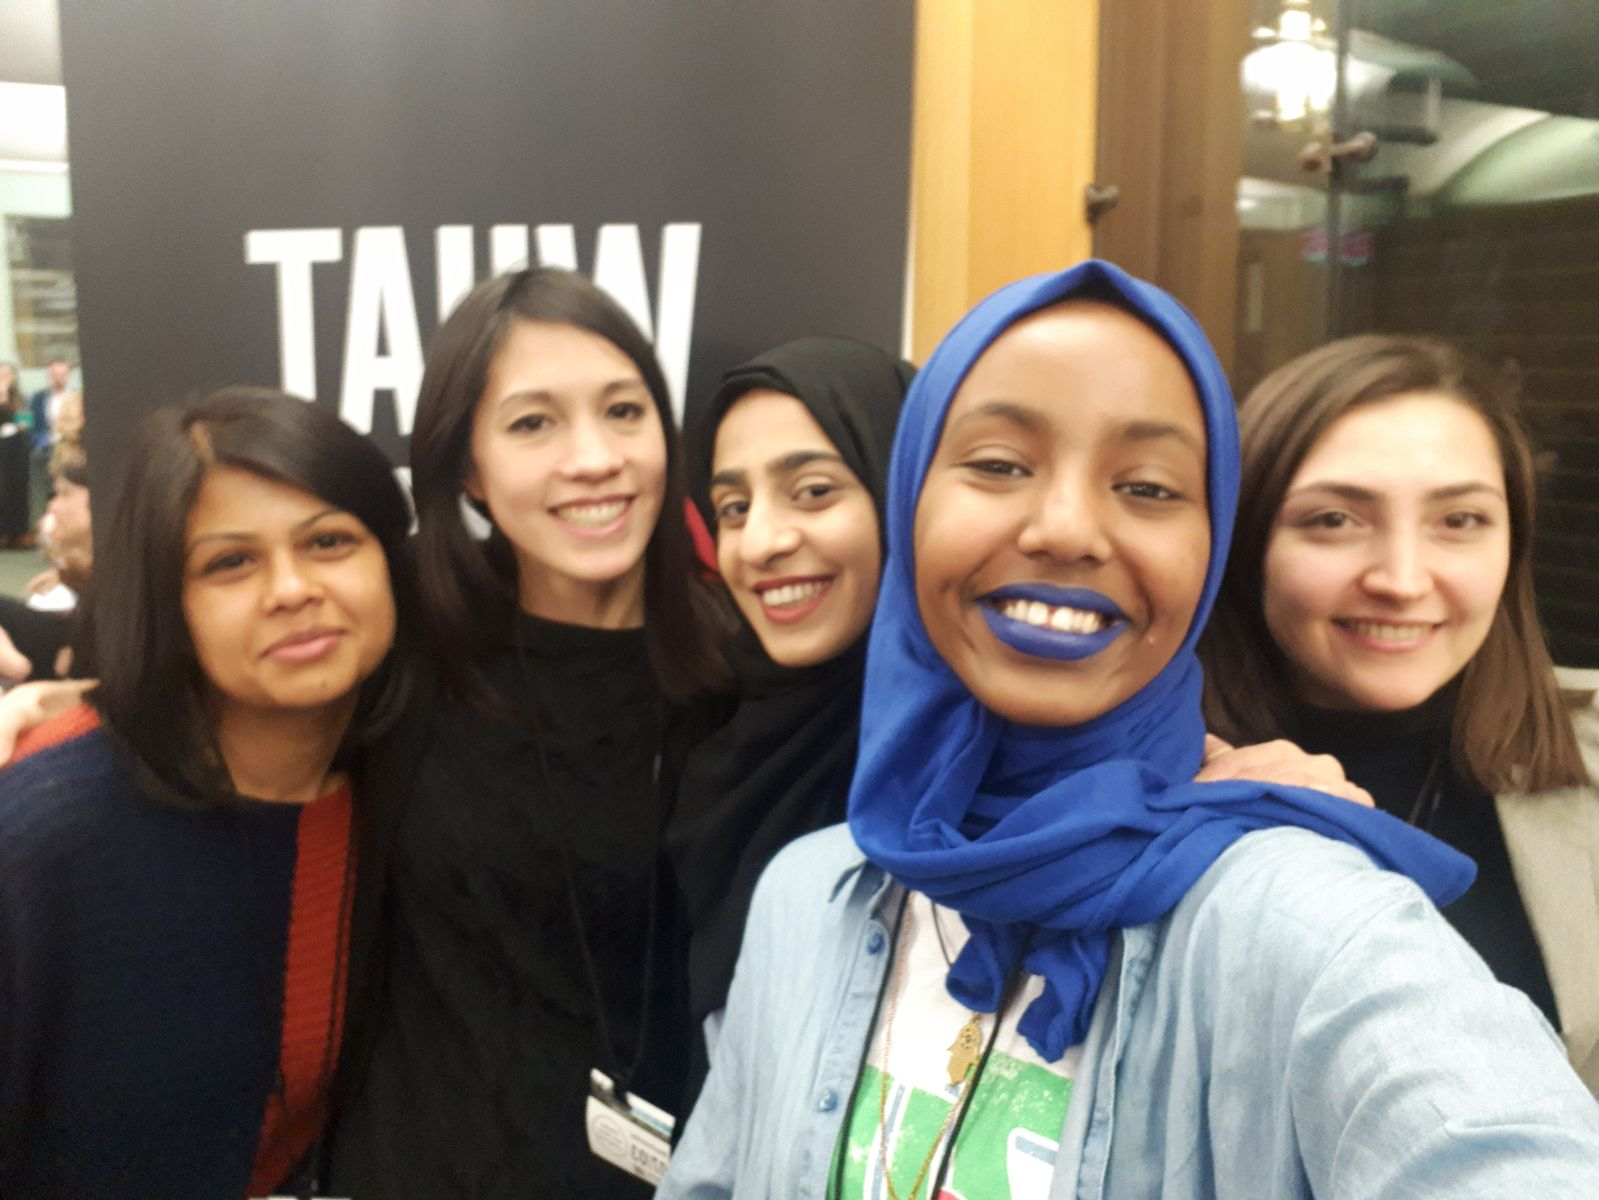 Shaheda (far left) and WEN team at What Women Want 2.0 Launch in Parliament.